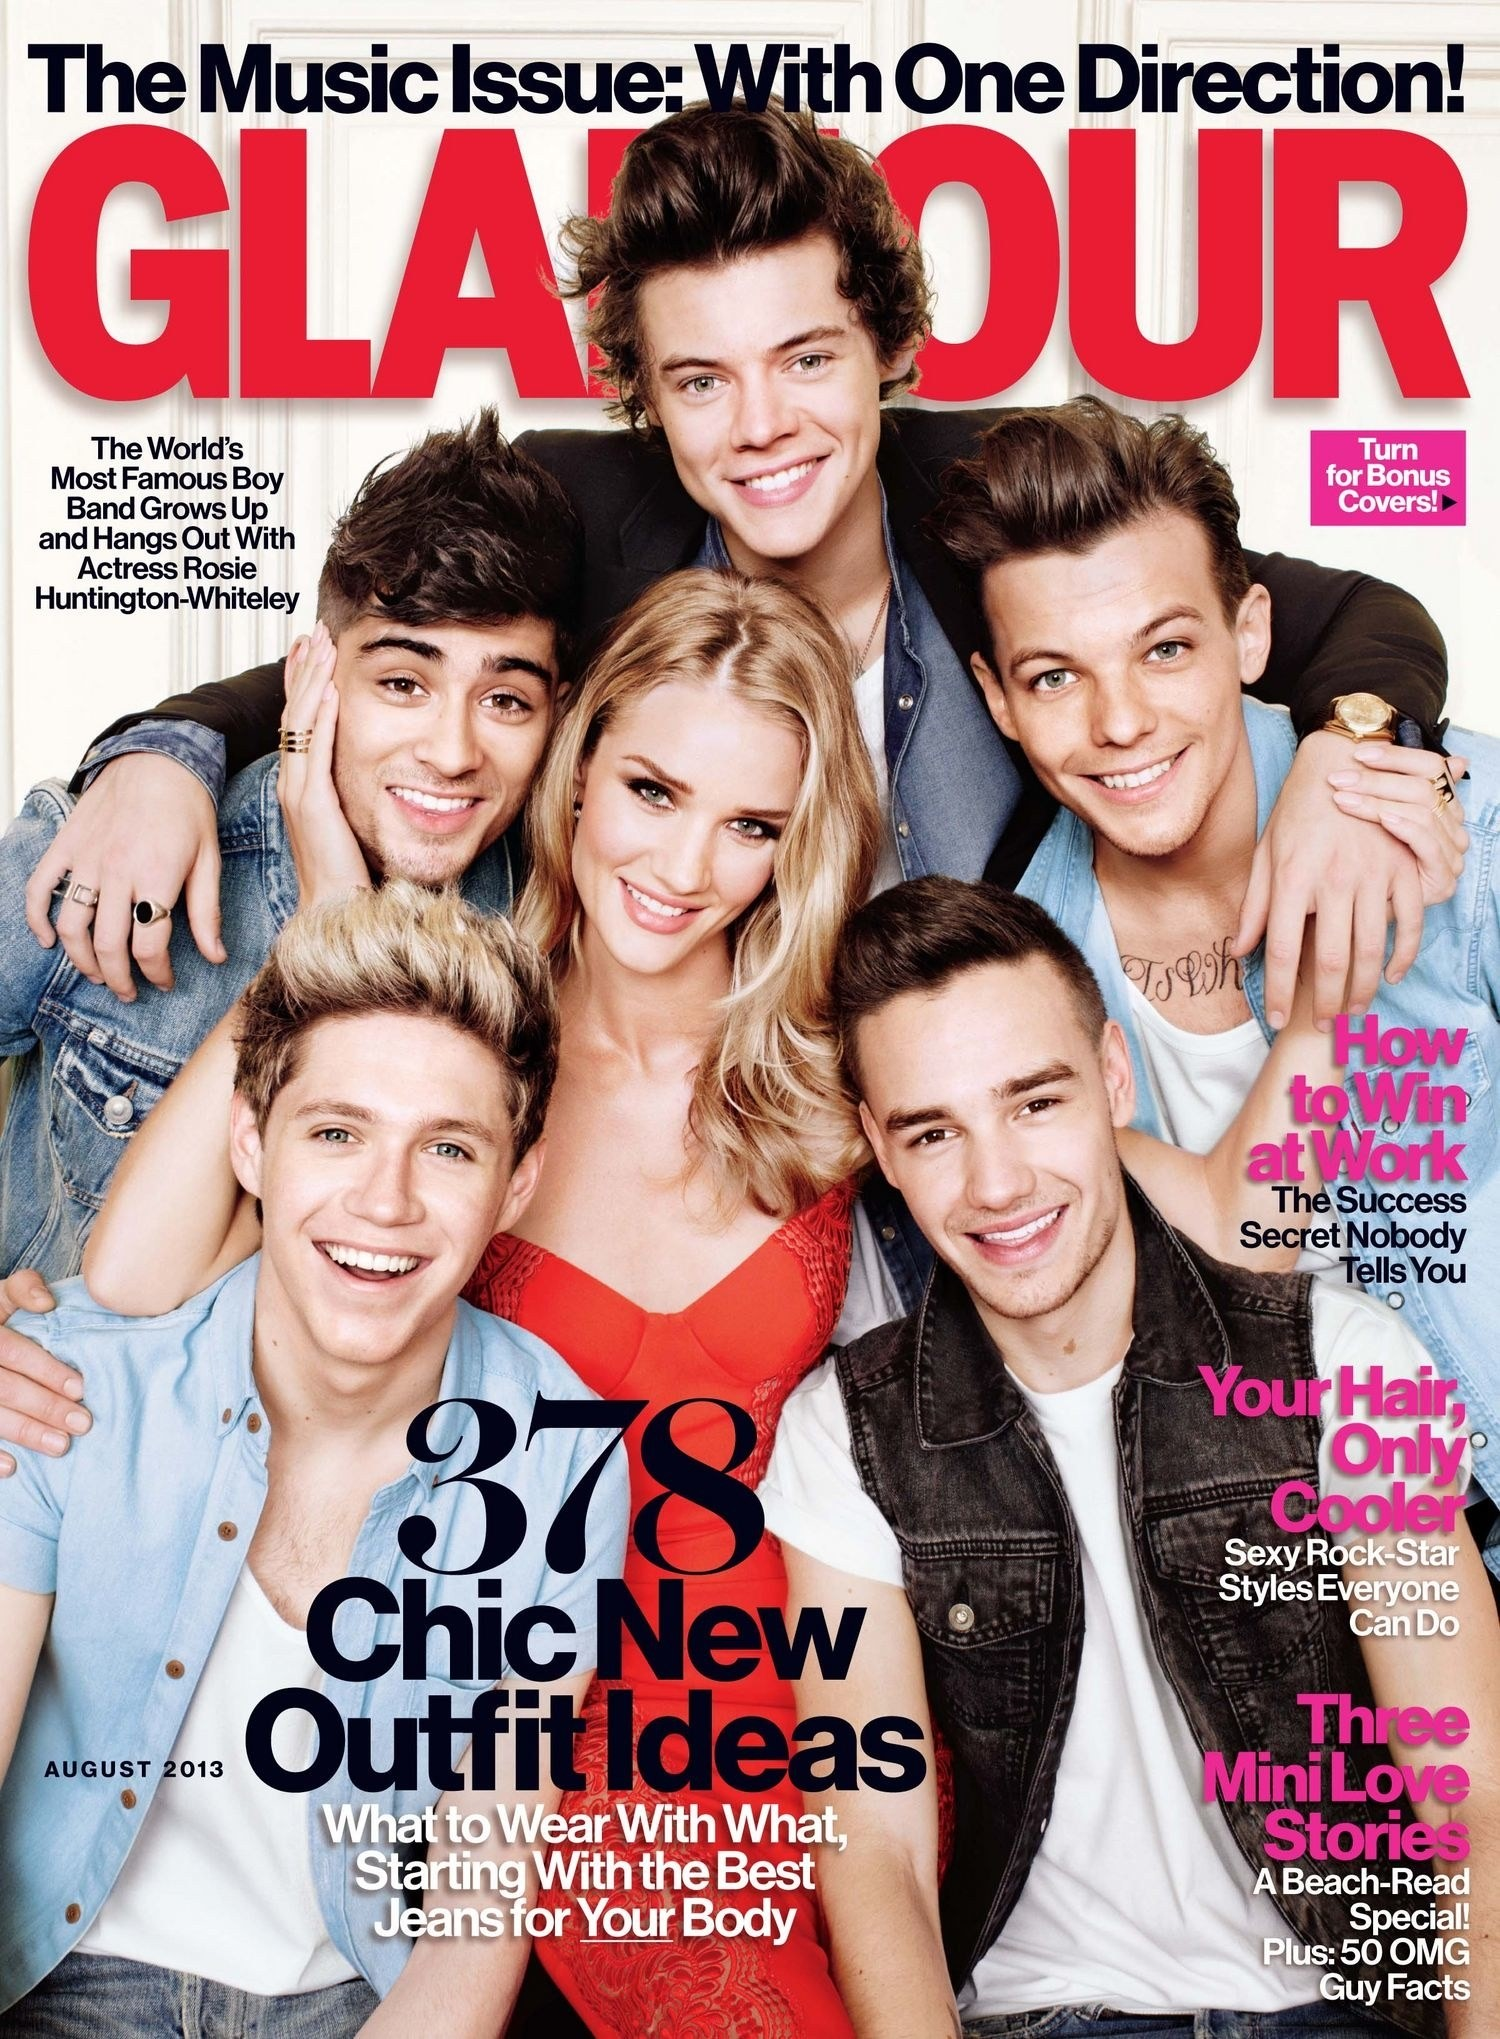 FIRST LOOK: One Direction and Rosie Huntington-Whiteley Star on the Cover  of Glamour's August Music Issue! | Glamour